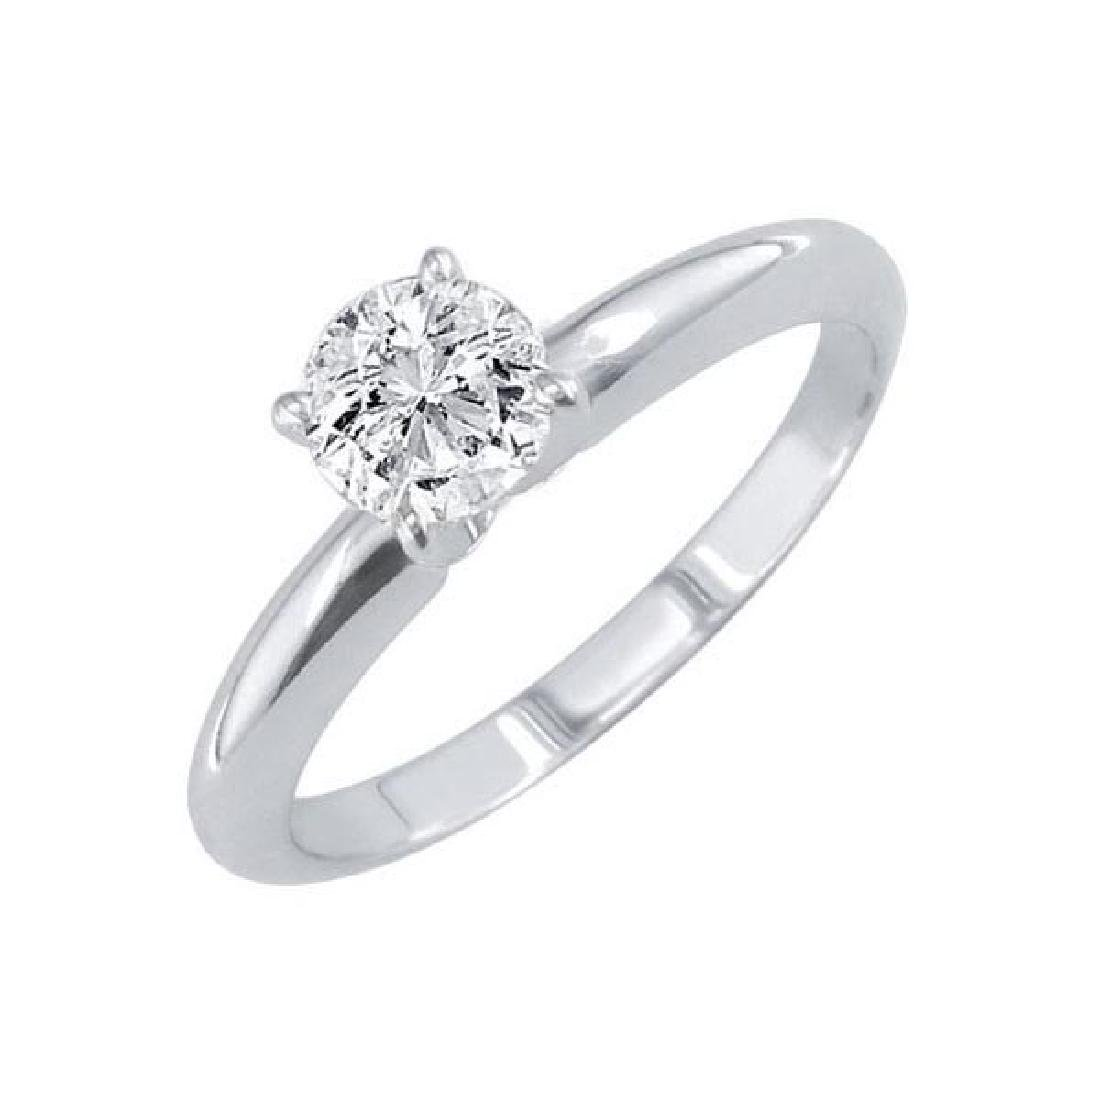 Certified 1.11 CTW Round Diamond Solitaire 14k Ring I/S